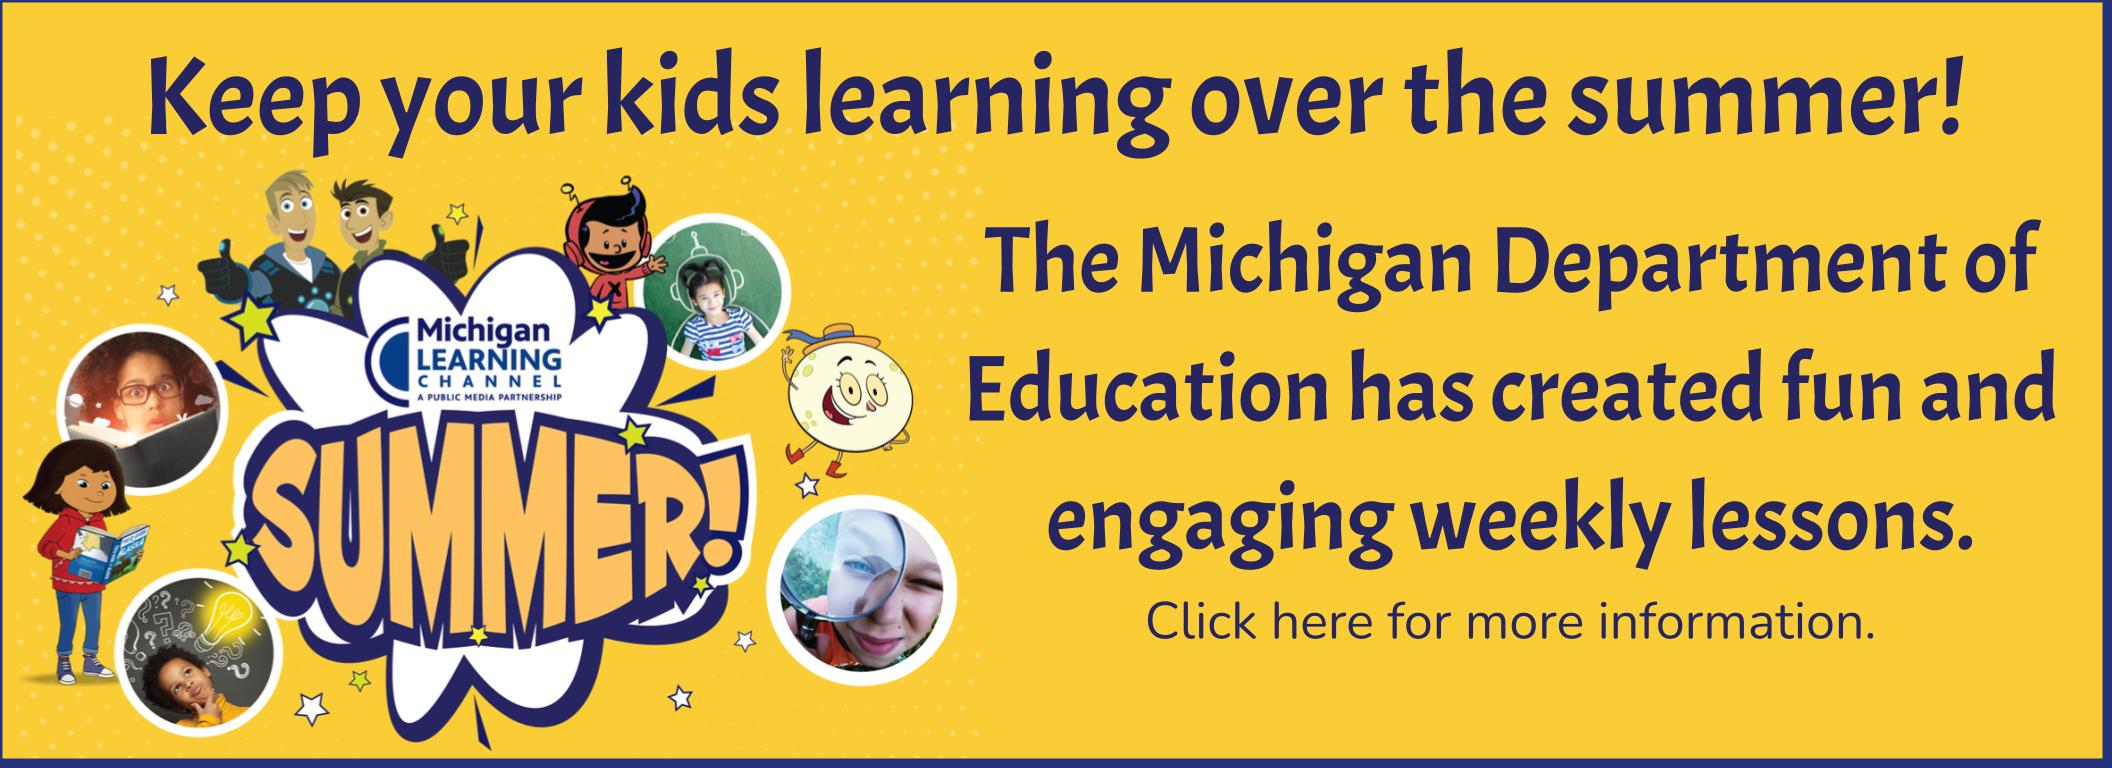 Michigan Learning Channel Summer Lessons